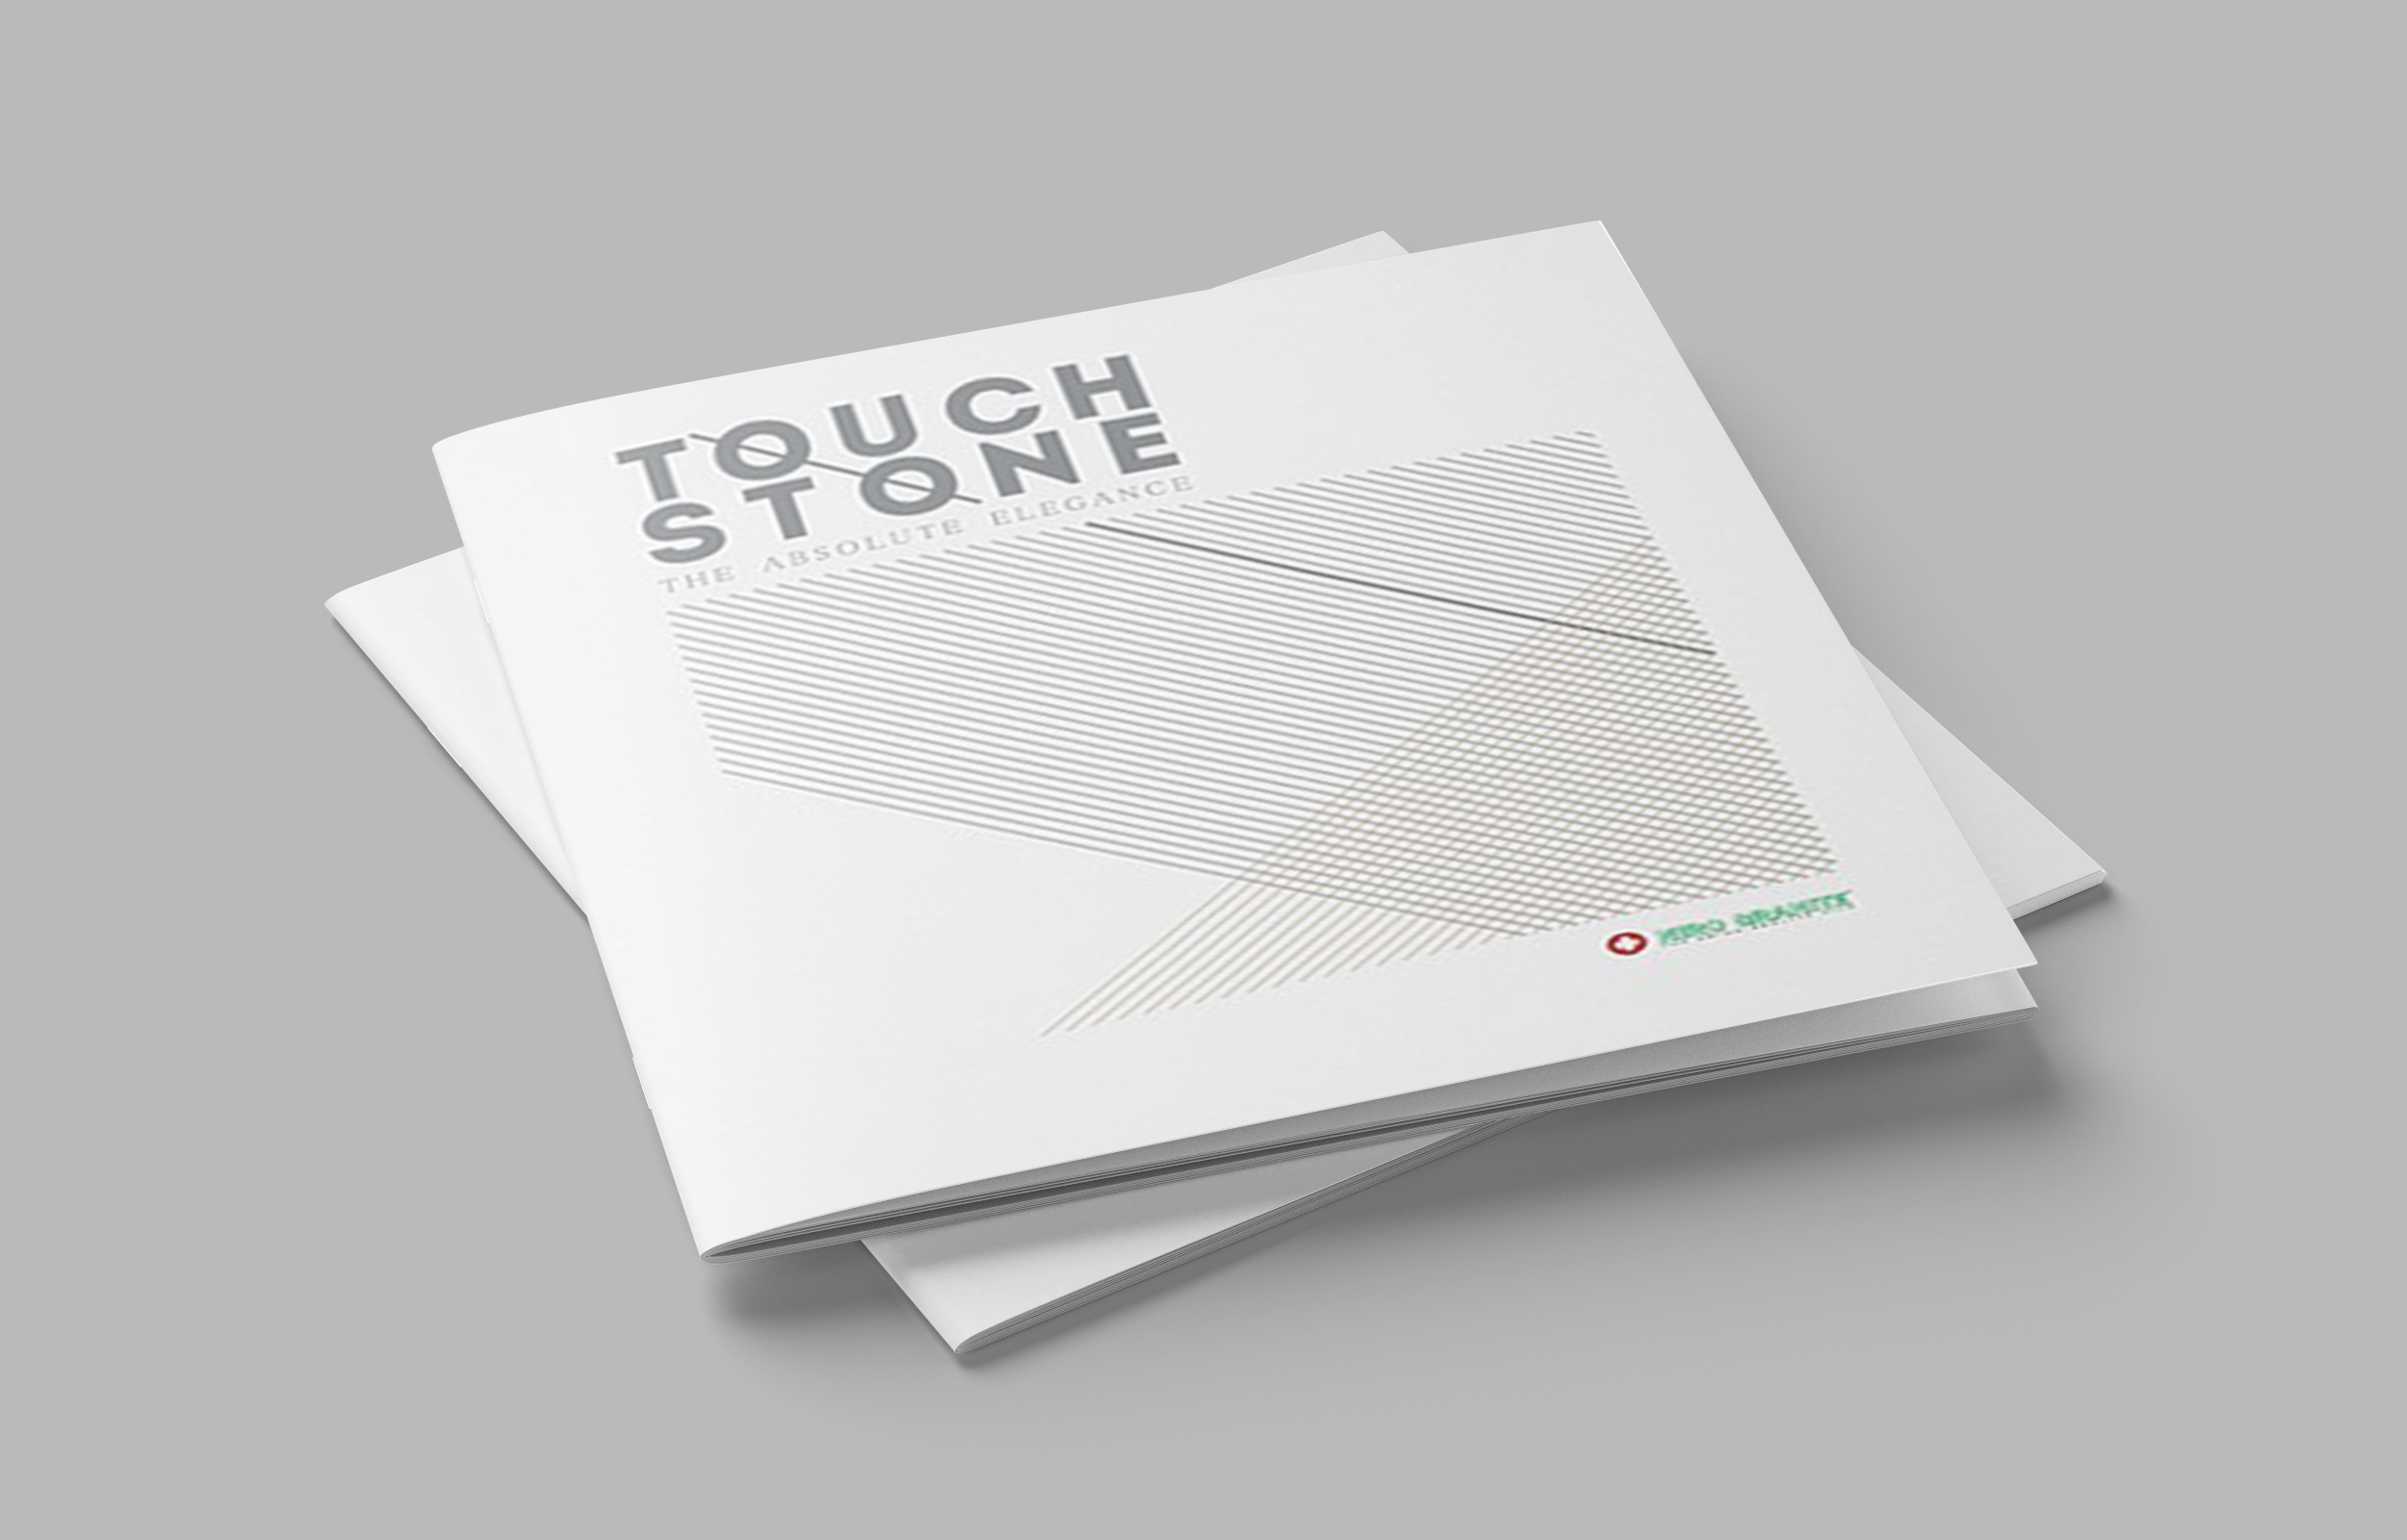 TouchStone Brochure for Niro Granite